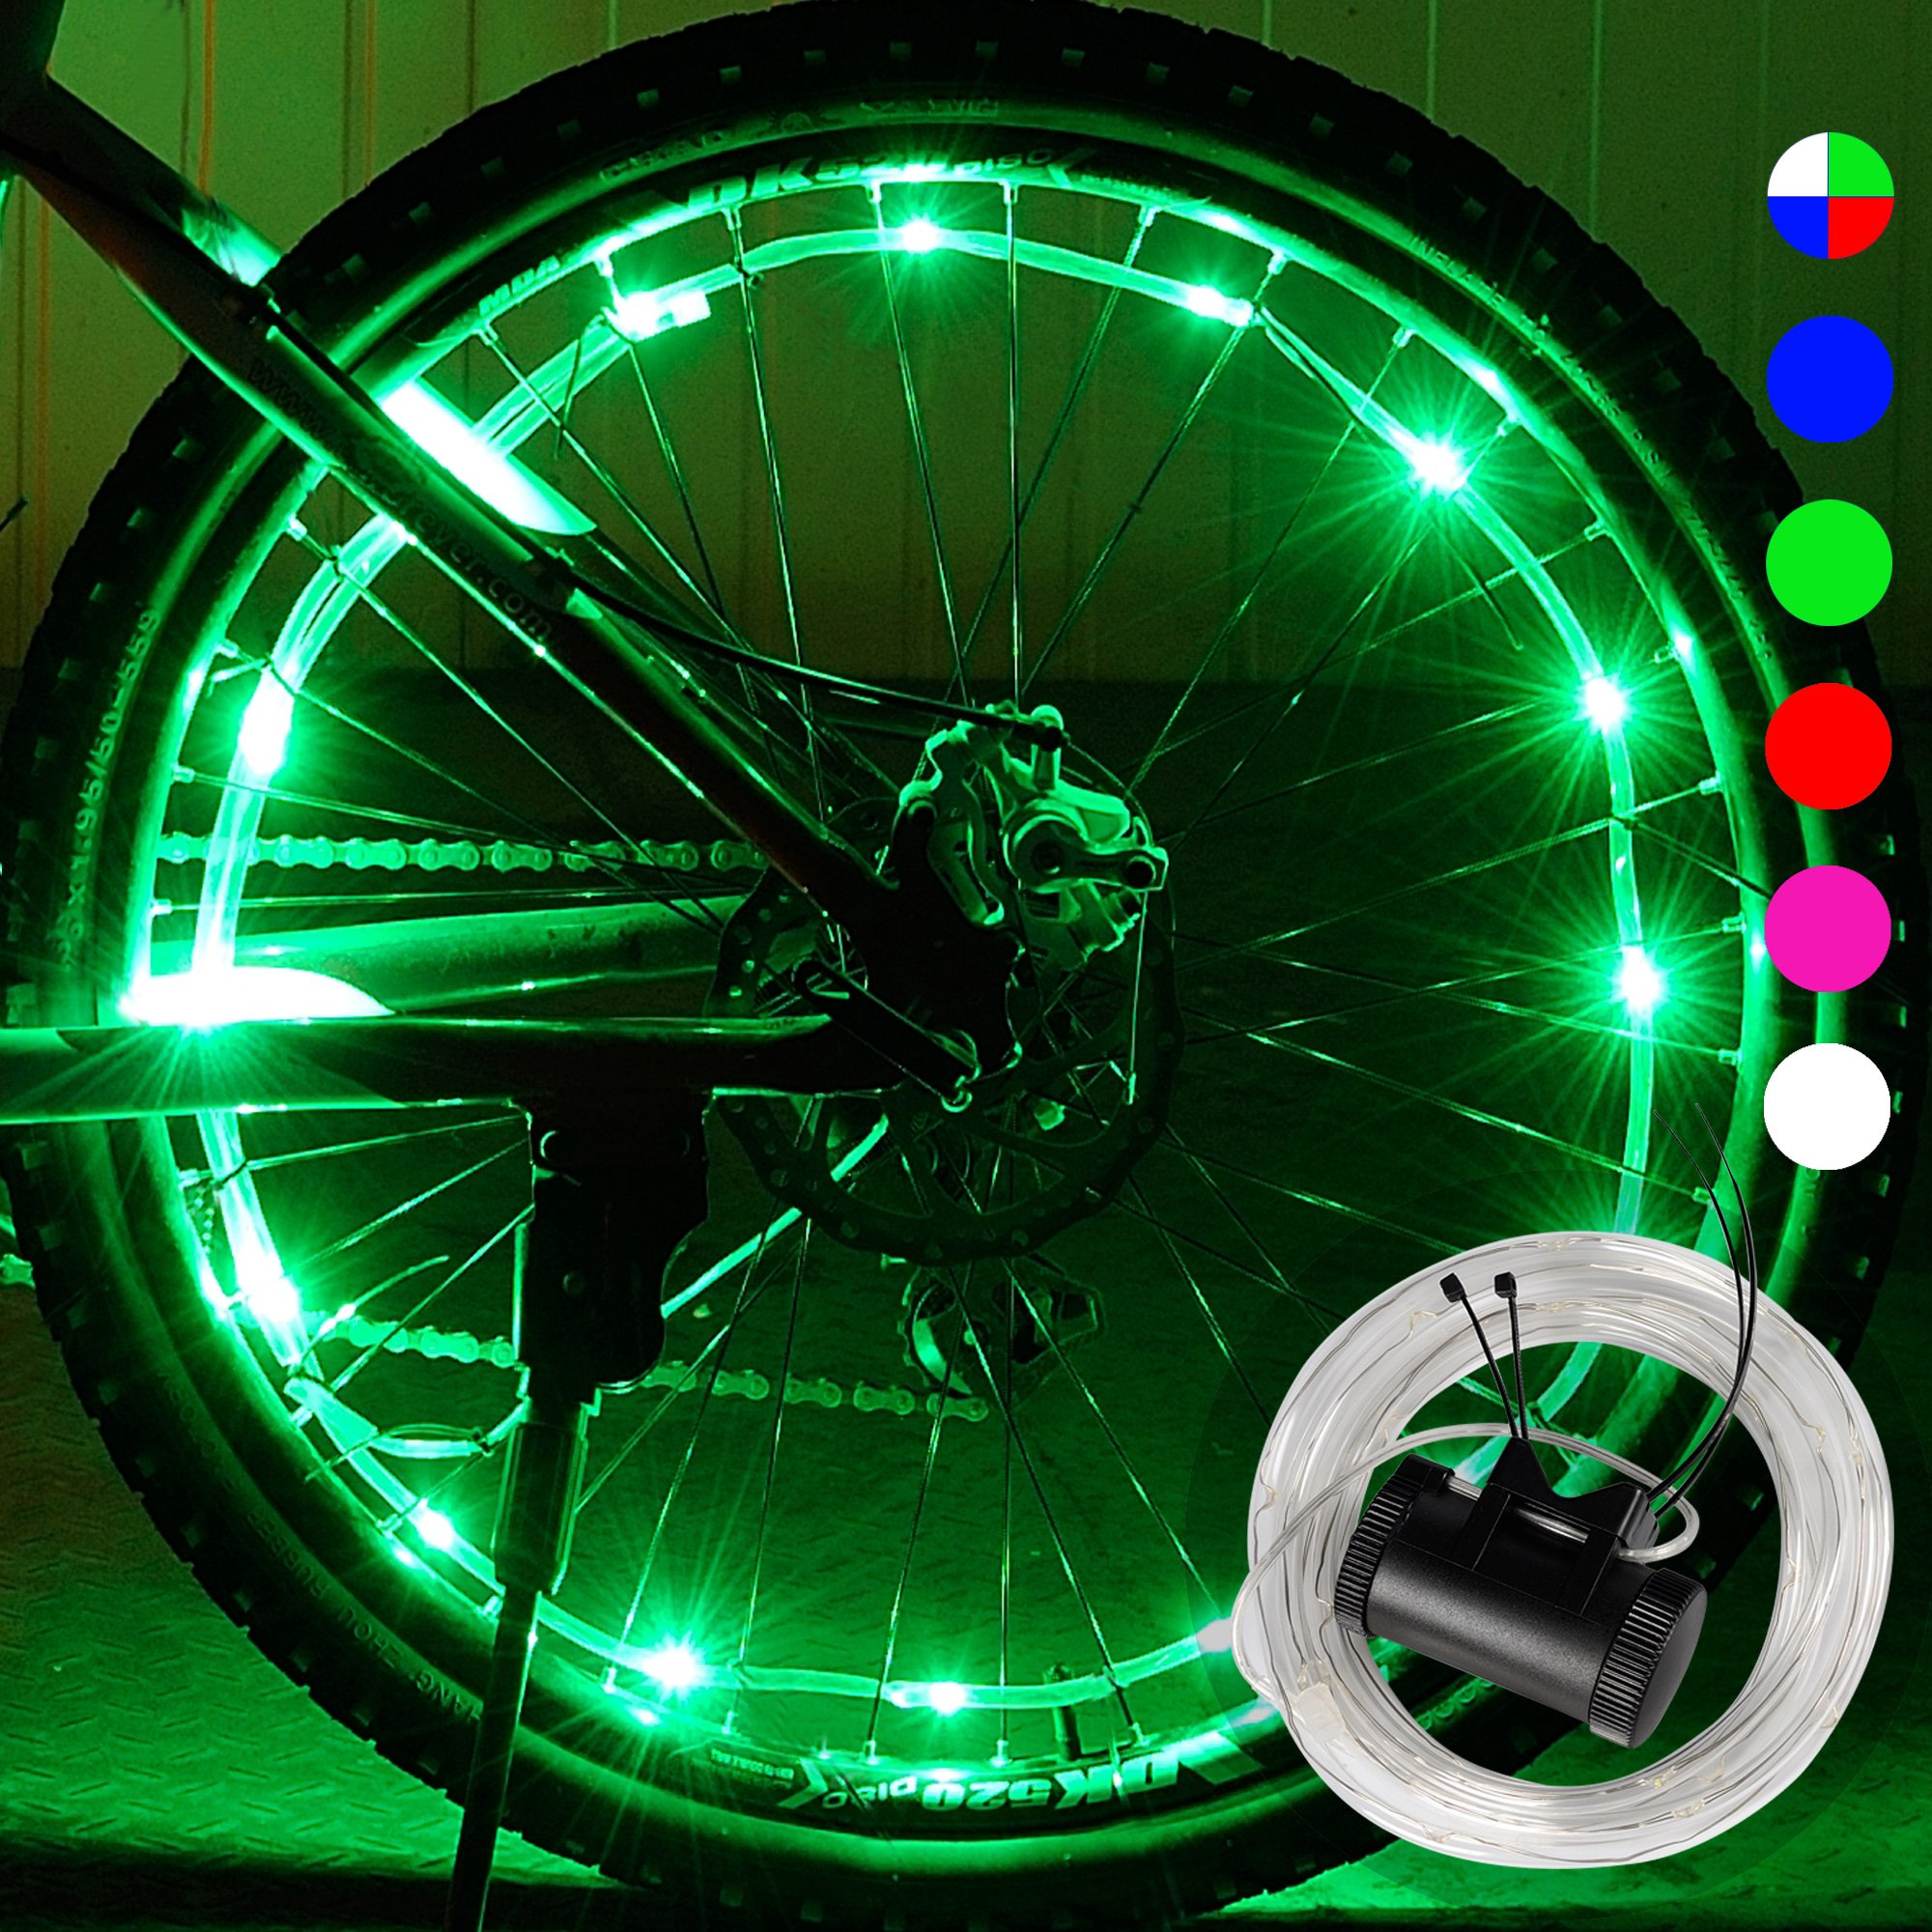 DAWAY A01+ Bike Wheel Light - Waterproof LED Bicycle Spoke Light, Cool Safety Bike Tire Accessories, Light Up Spokes, Super Bright, 2 Modes, with Battery, Gifts for Kids Boy Girl Adults, 1 Pack